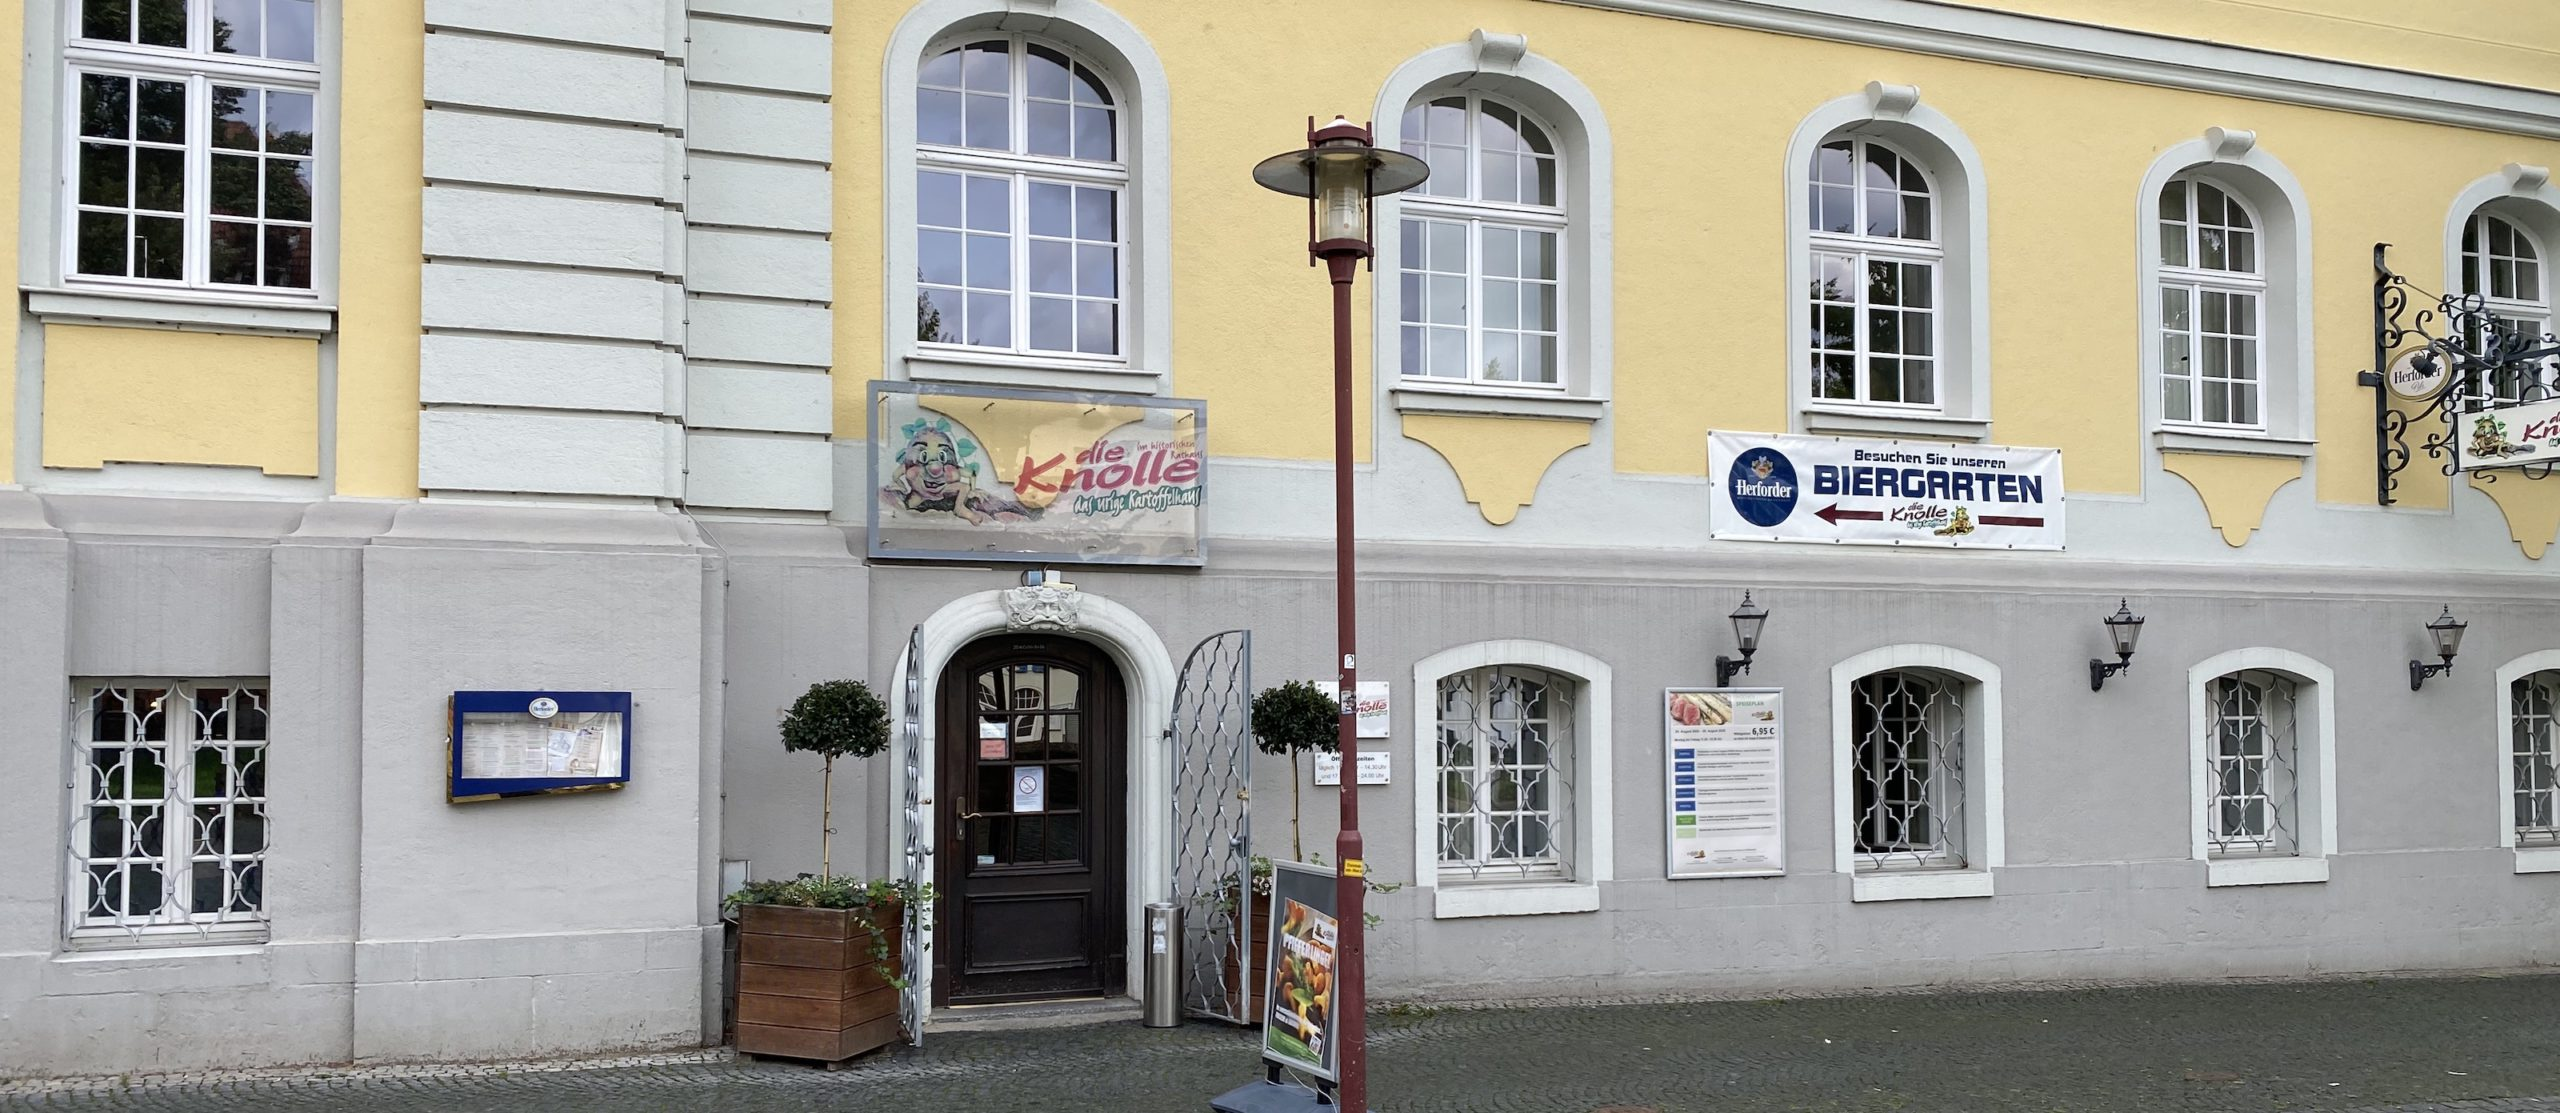 Rathausplatz 1, Herford, 05221-9933020